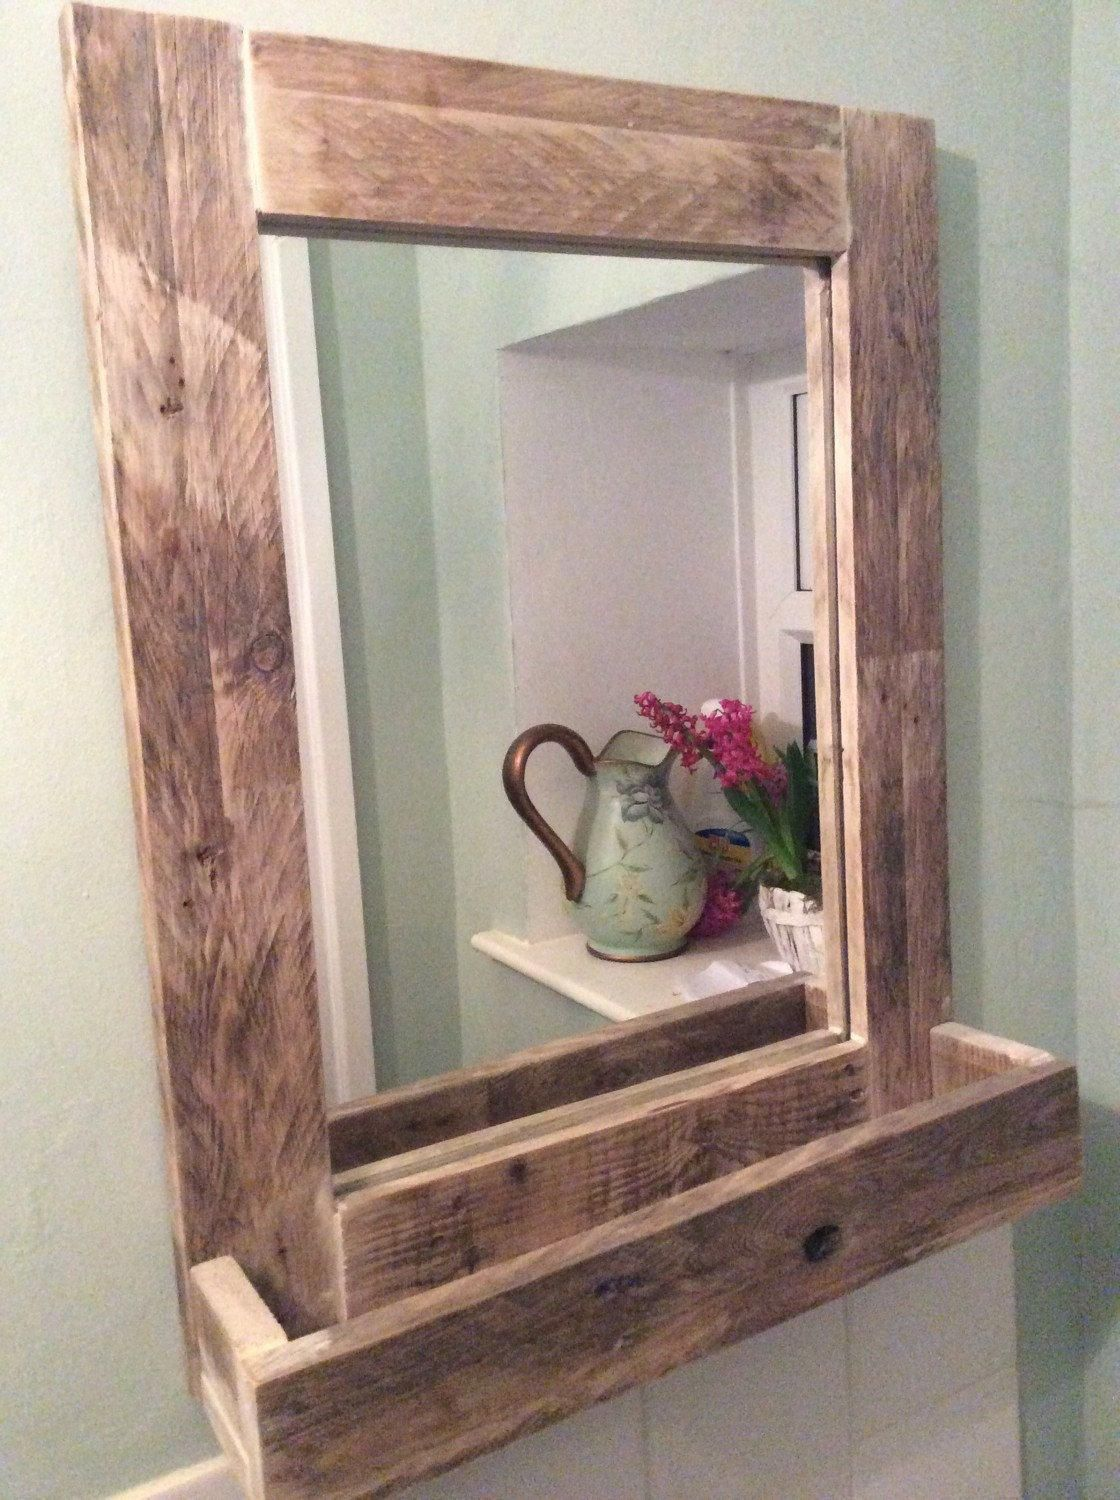 Bathroom mirror made from reclaimed pallet wood with